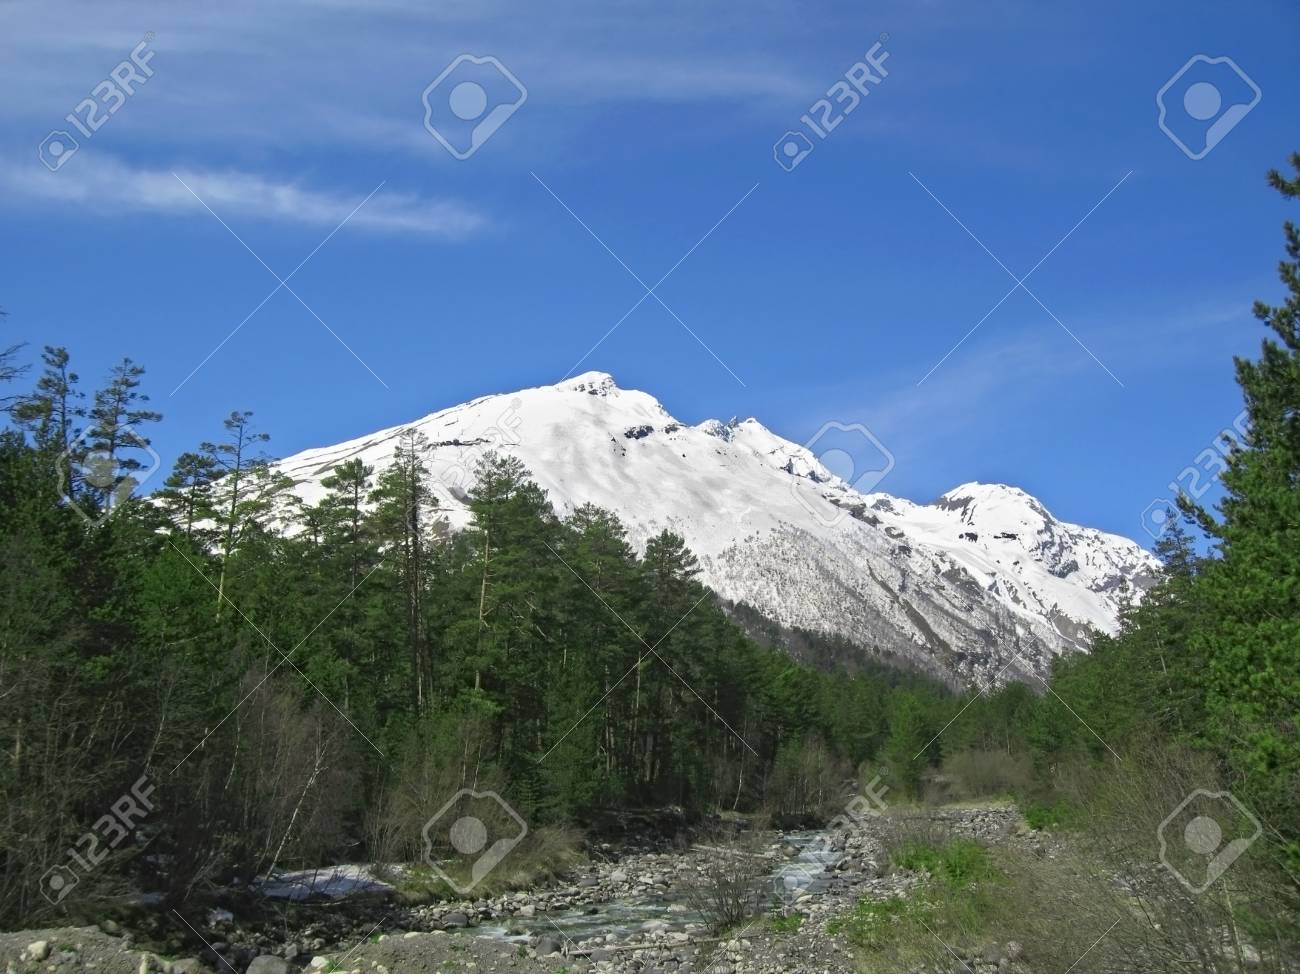 Caucasus mountains under the snow and cloudly sky Stock Photo - 11473899